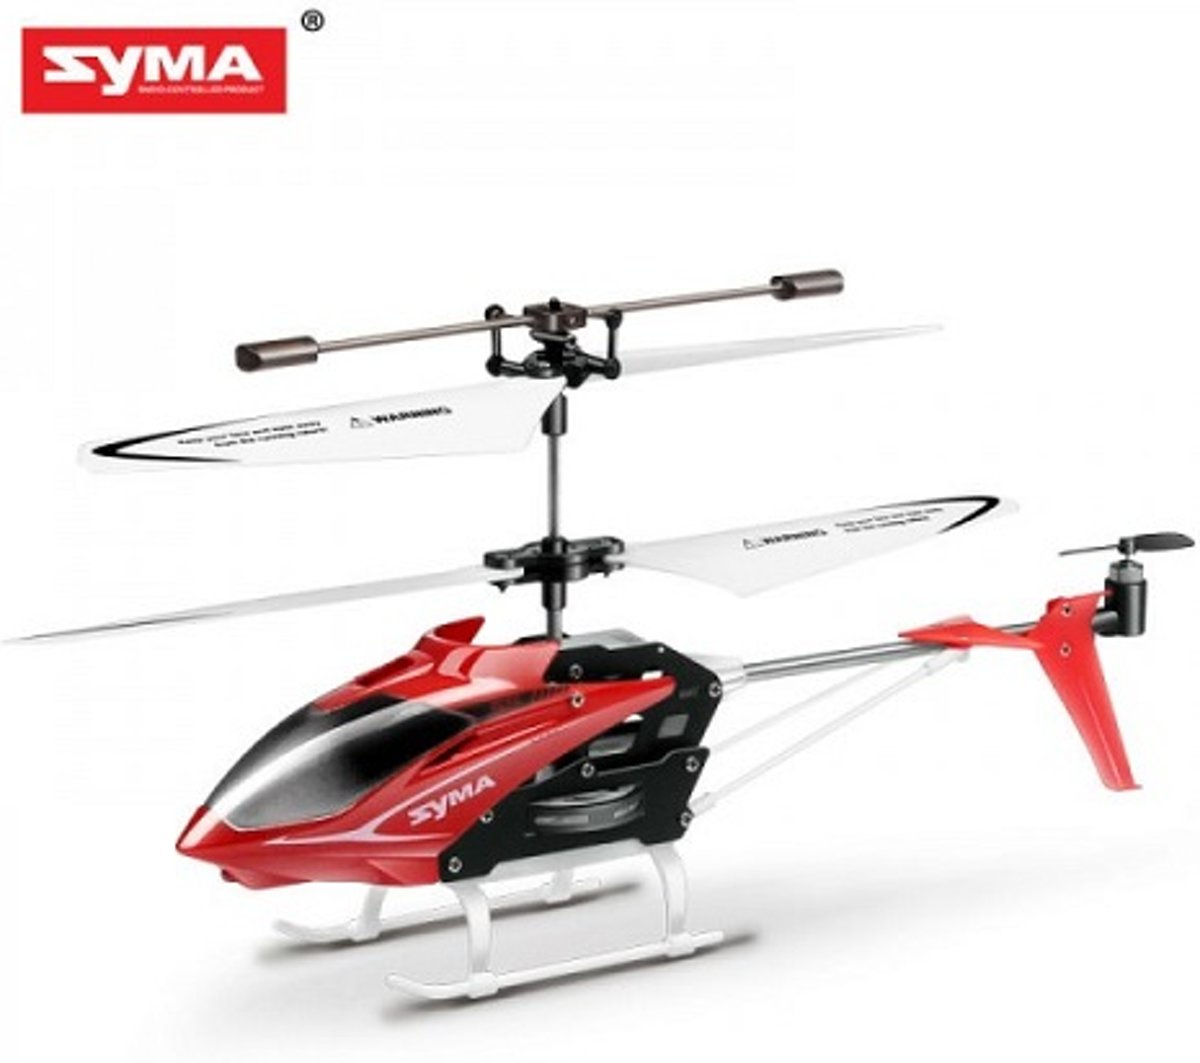 Syma S5 radiografische beginners rc helicopter